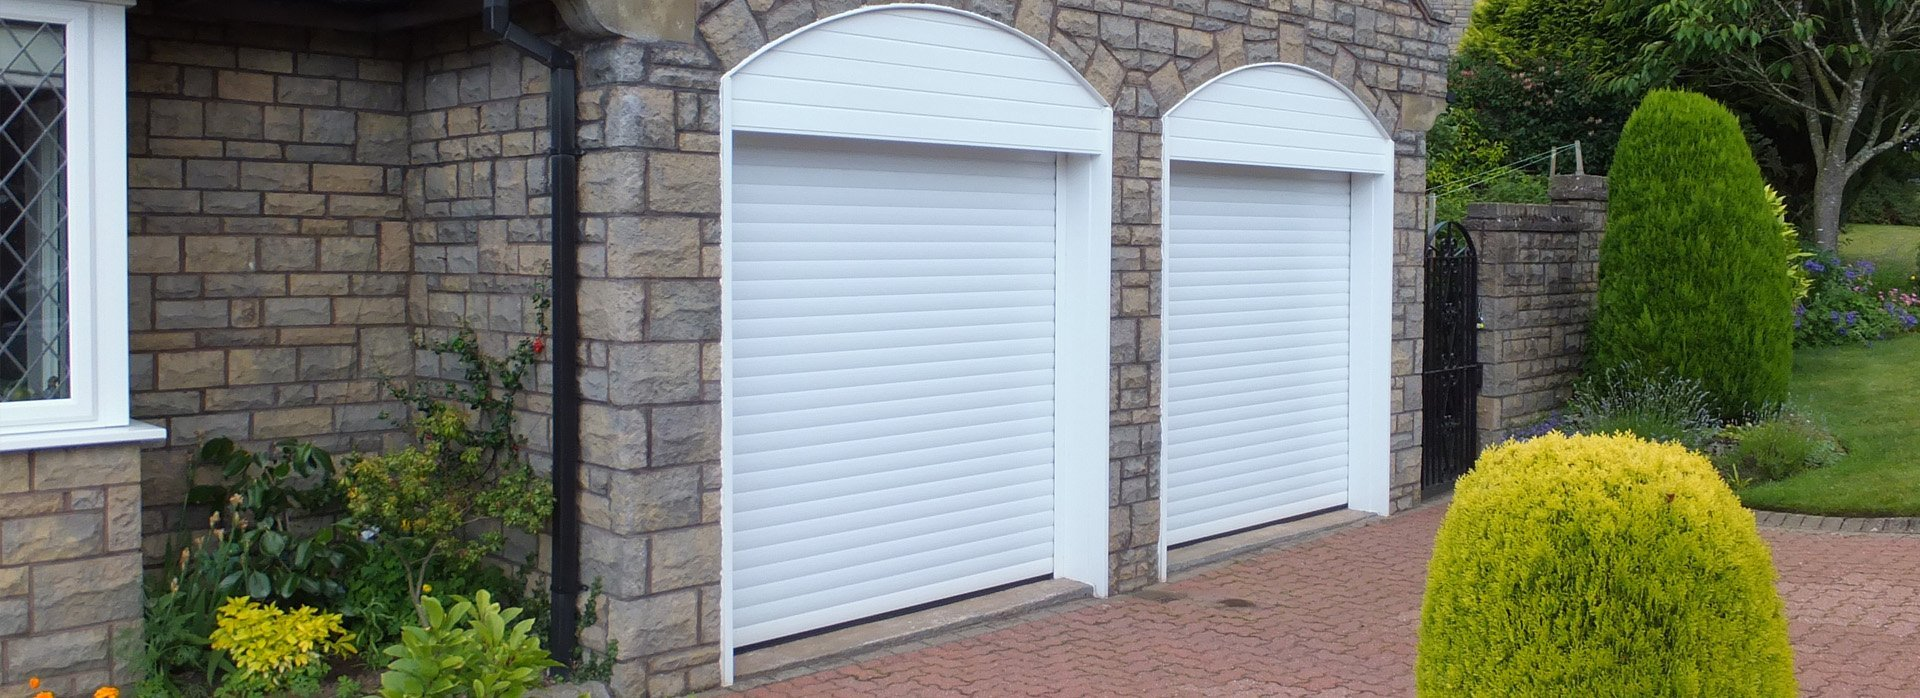 Garage doors in whitley bay newcastle and northumberland a local business you can trust rubansaba